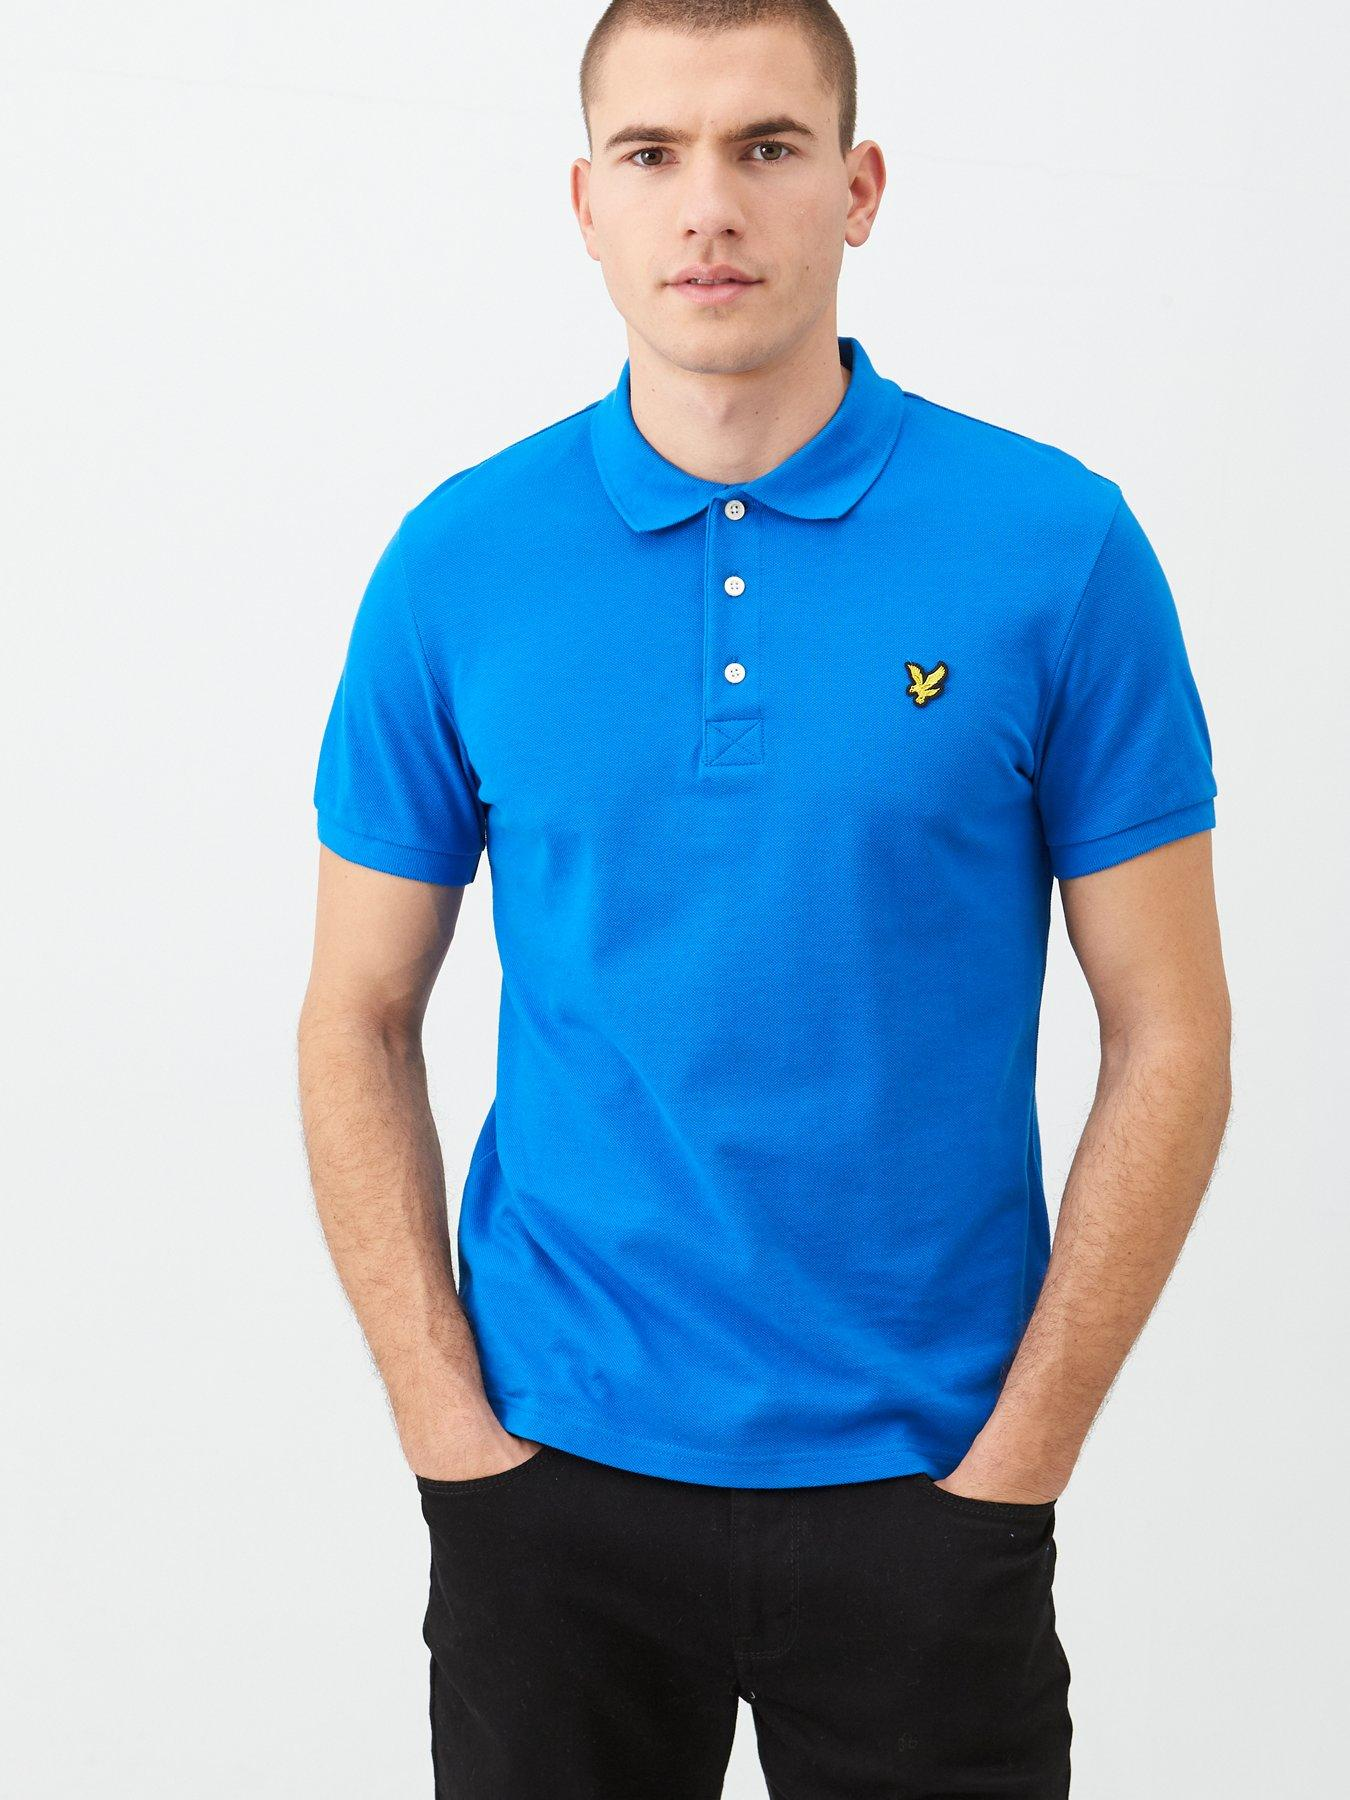 Loo Show Mens Retired Embroidery Polo Shirts Men Tee